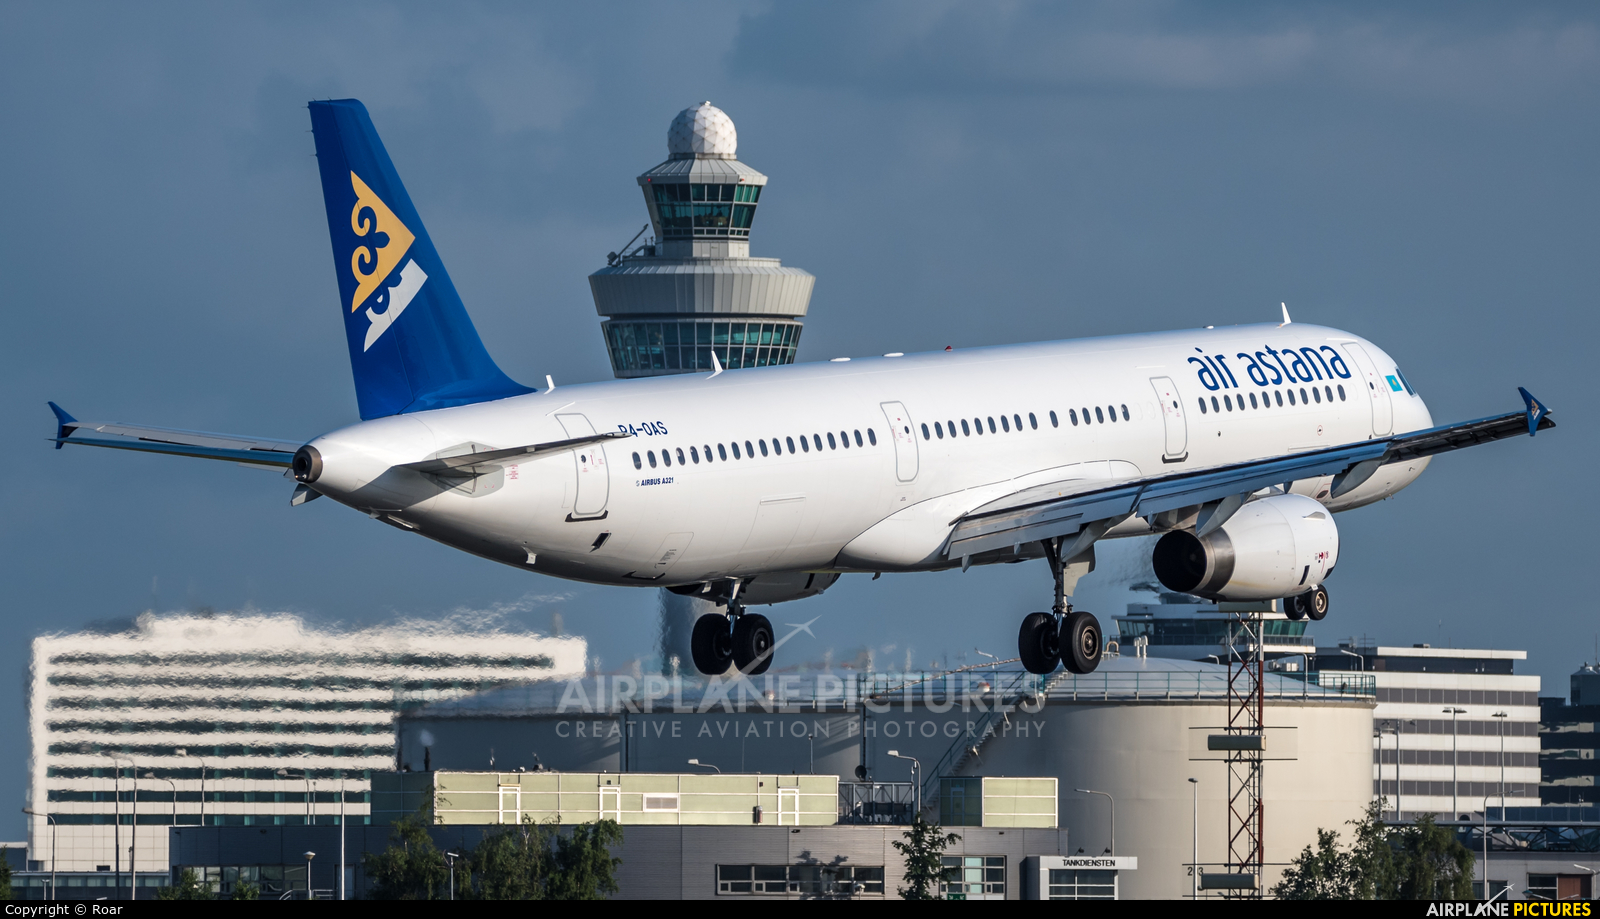 AIR ASTANA TO OFFER PASSENGERS IN-FLIGHT BROADBAND SPEED CONNECTIVITY